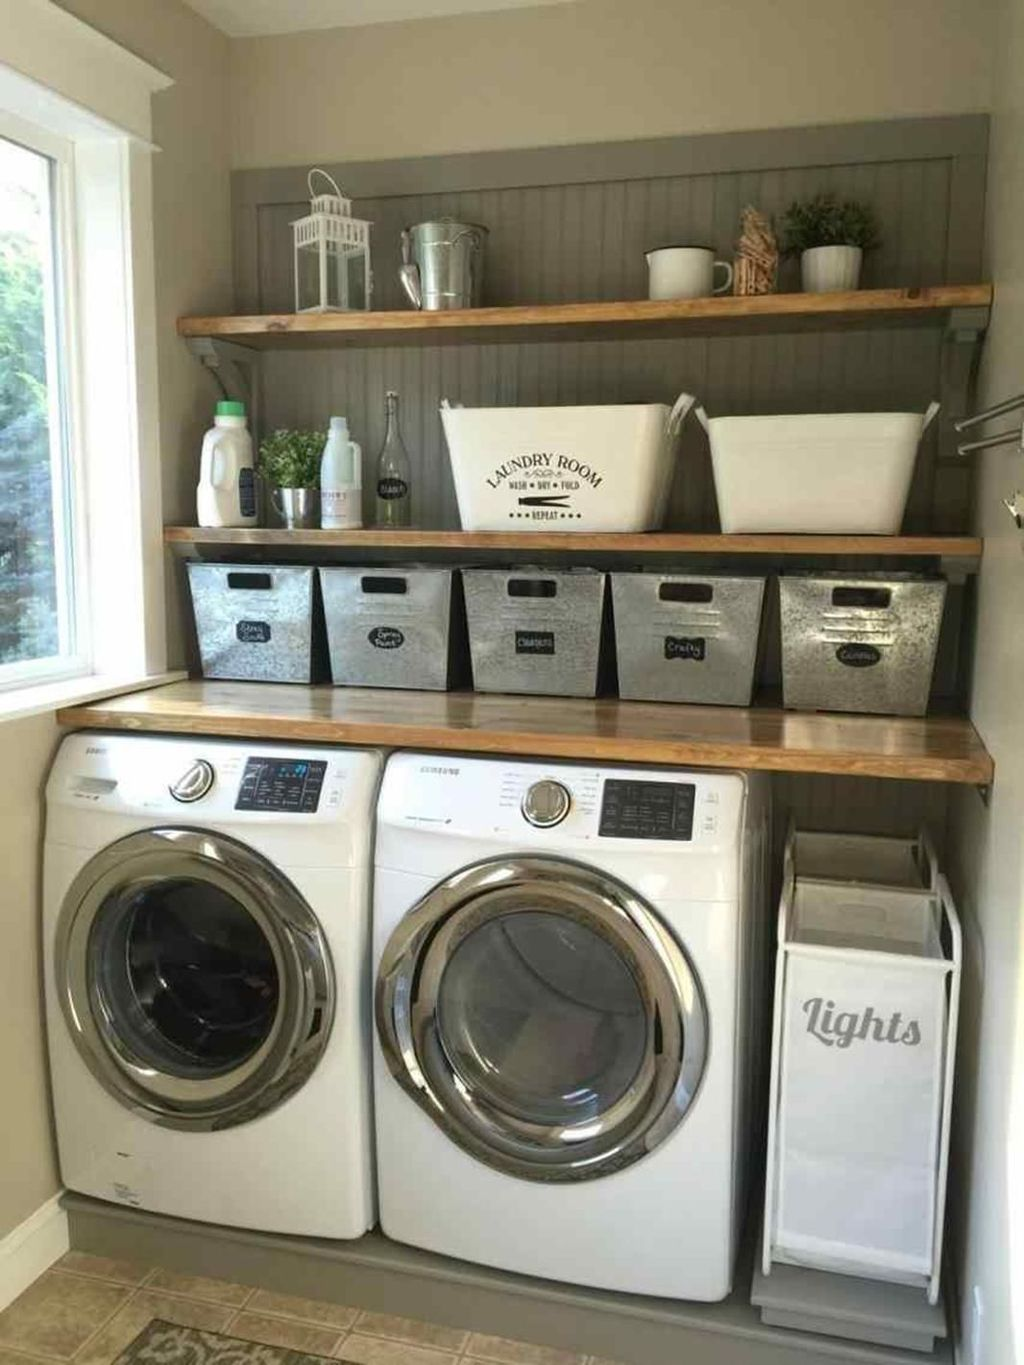 Inspiring Small Laundry Room Design And Decor Ideas 18